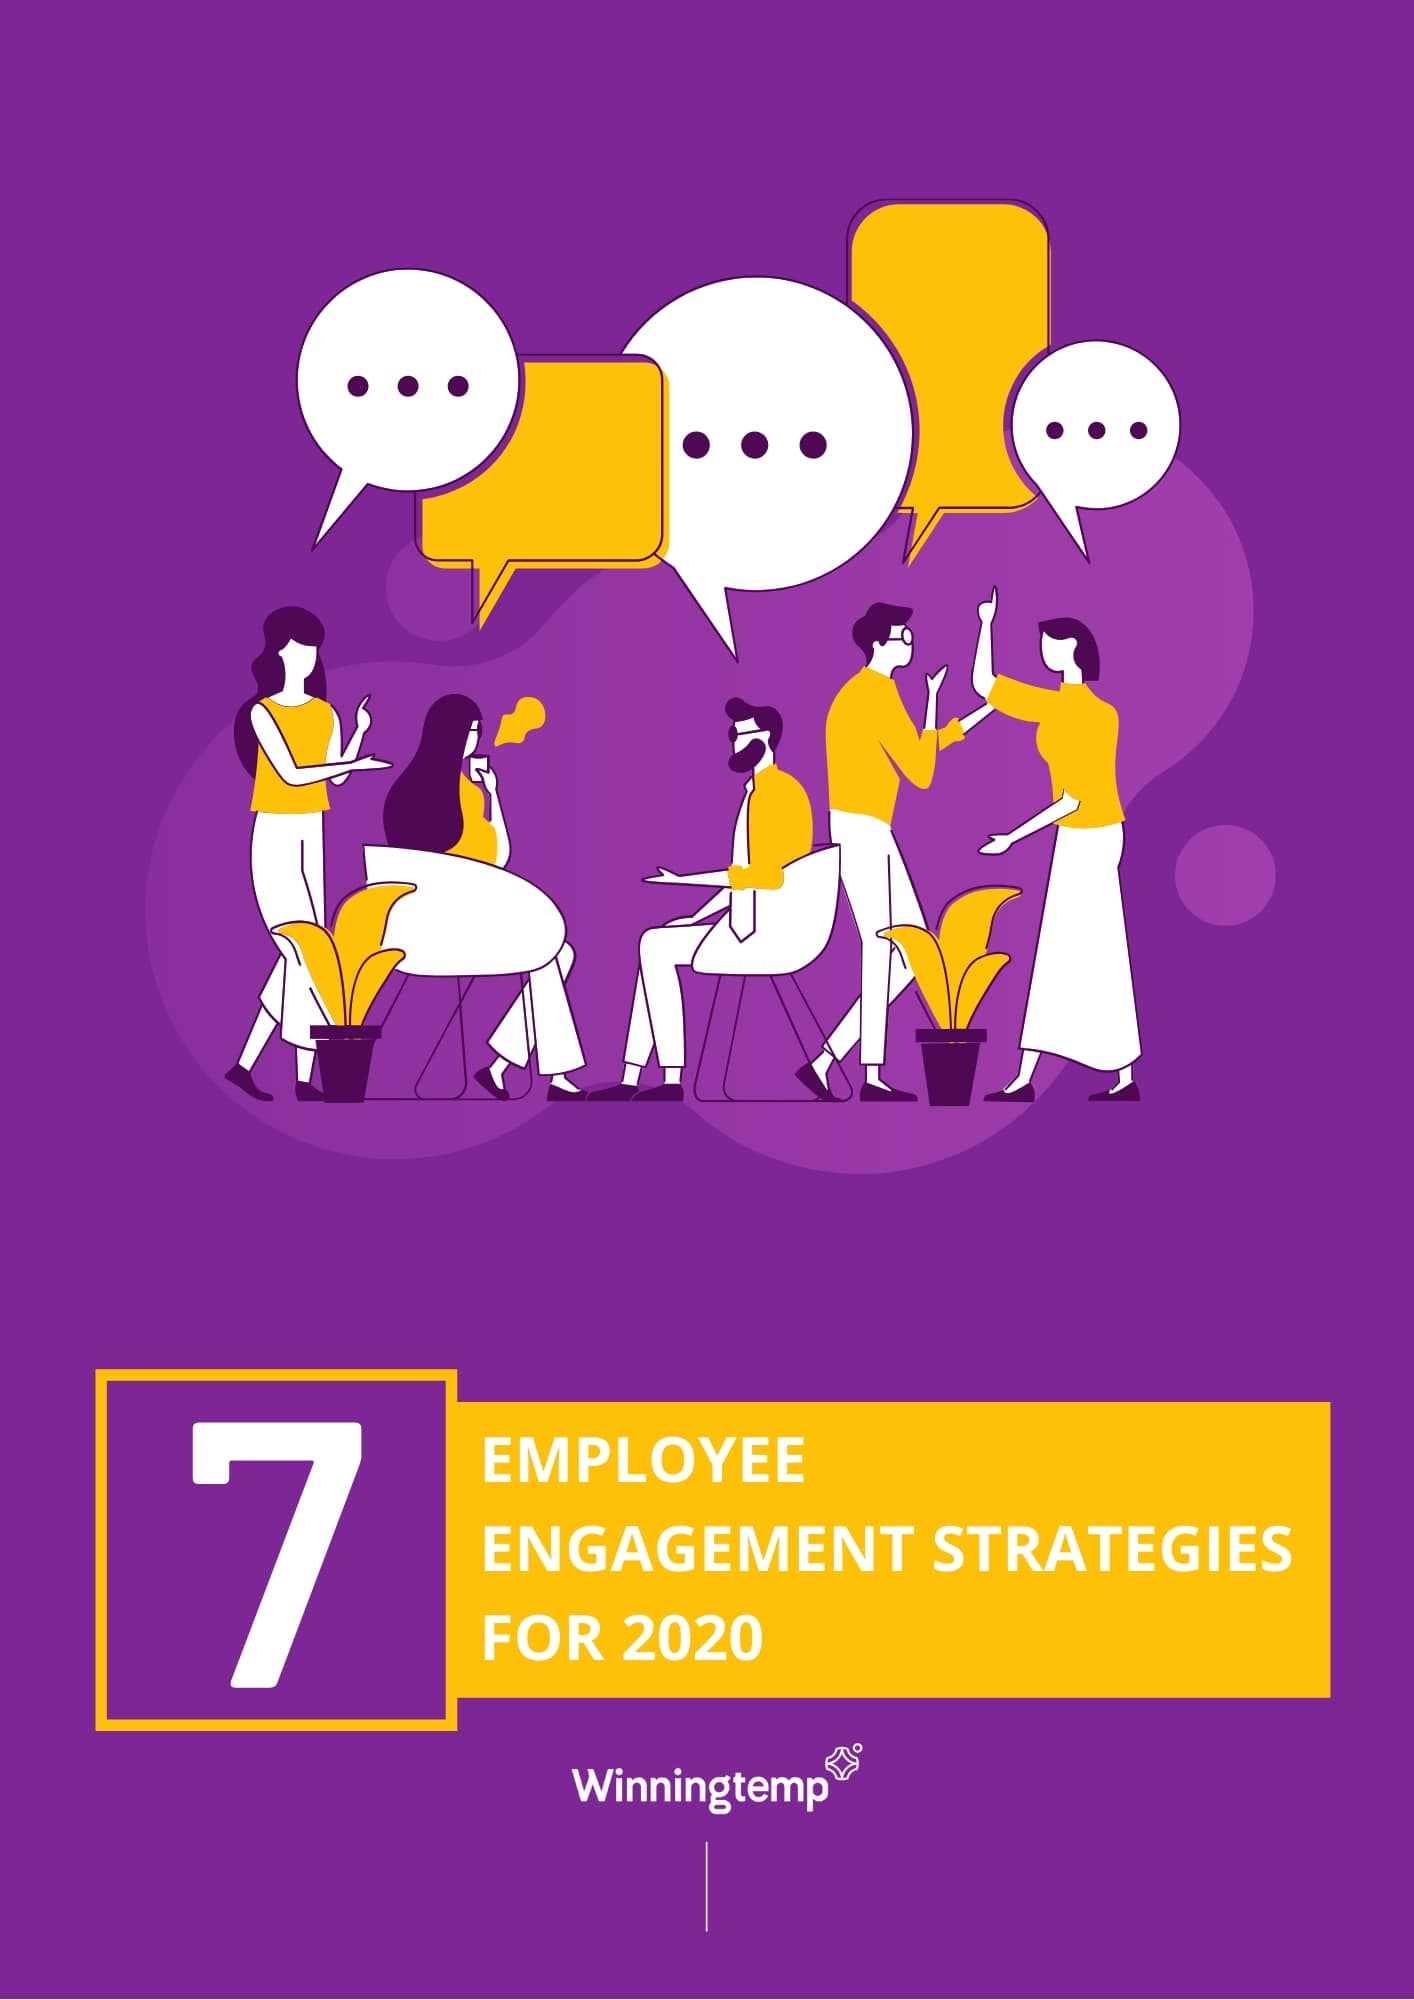 7 Employee Engagement Strategies for 2020